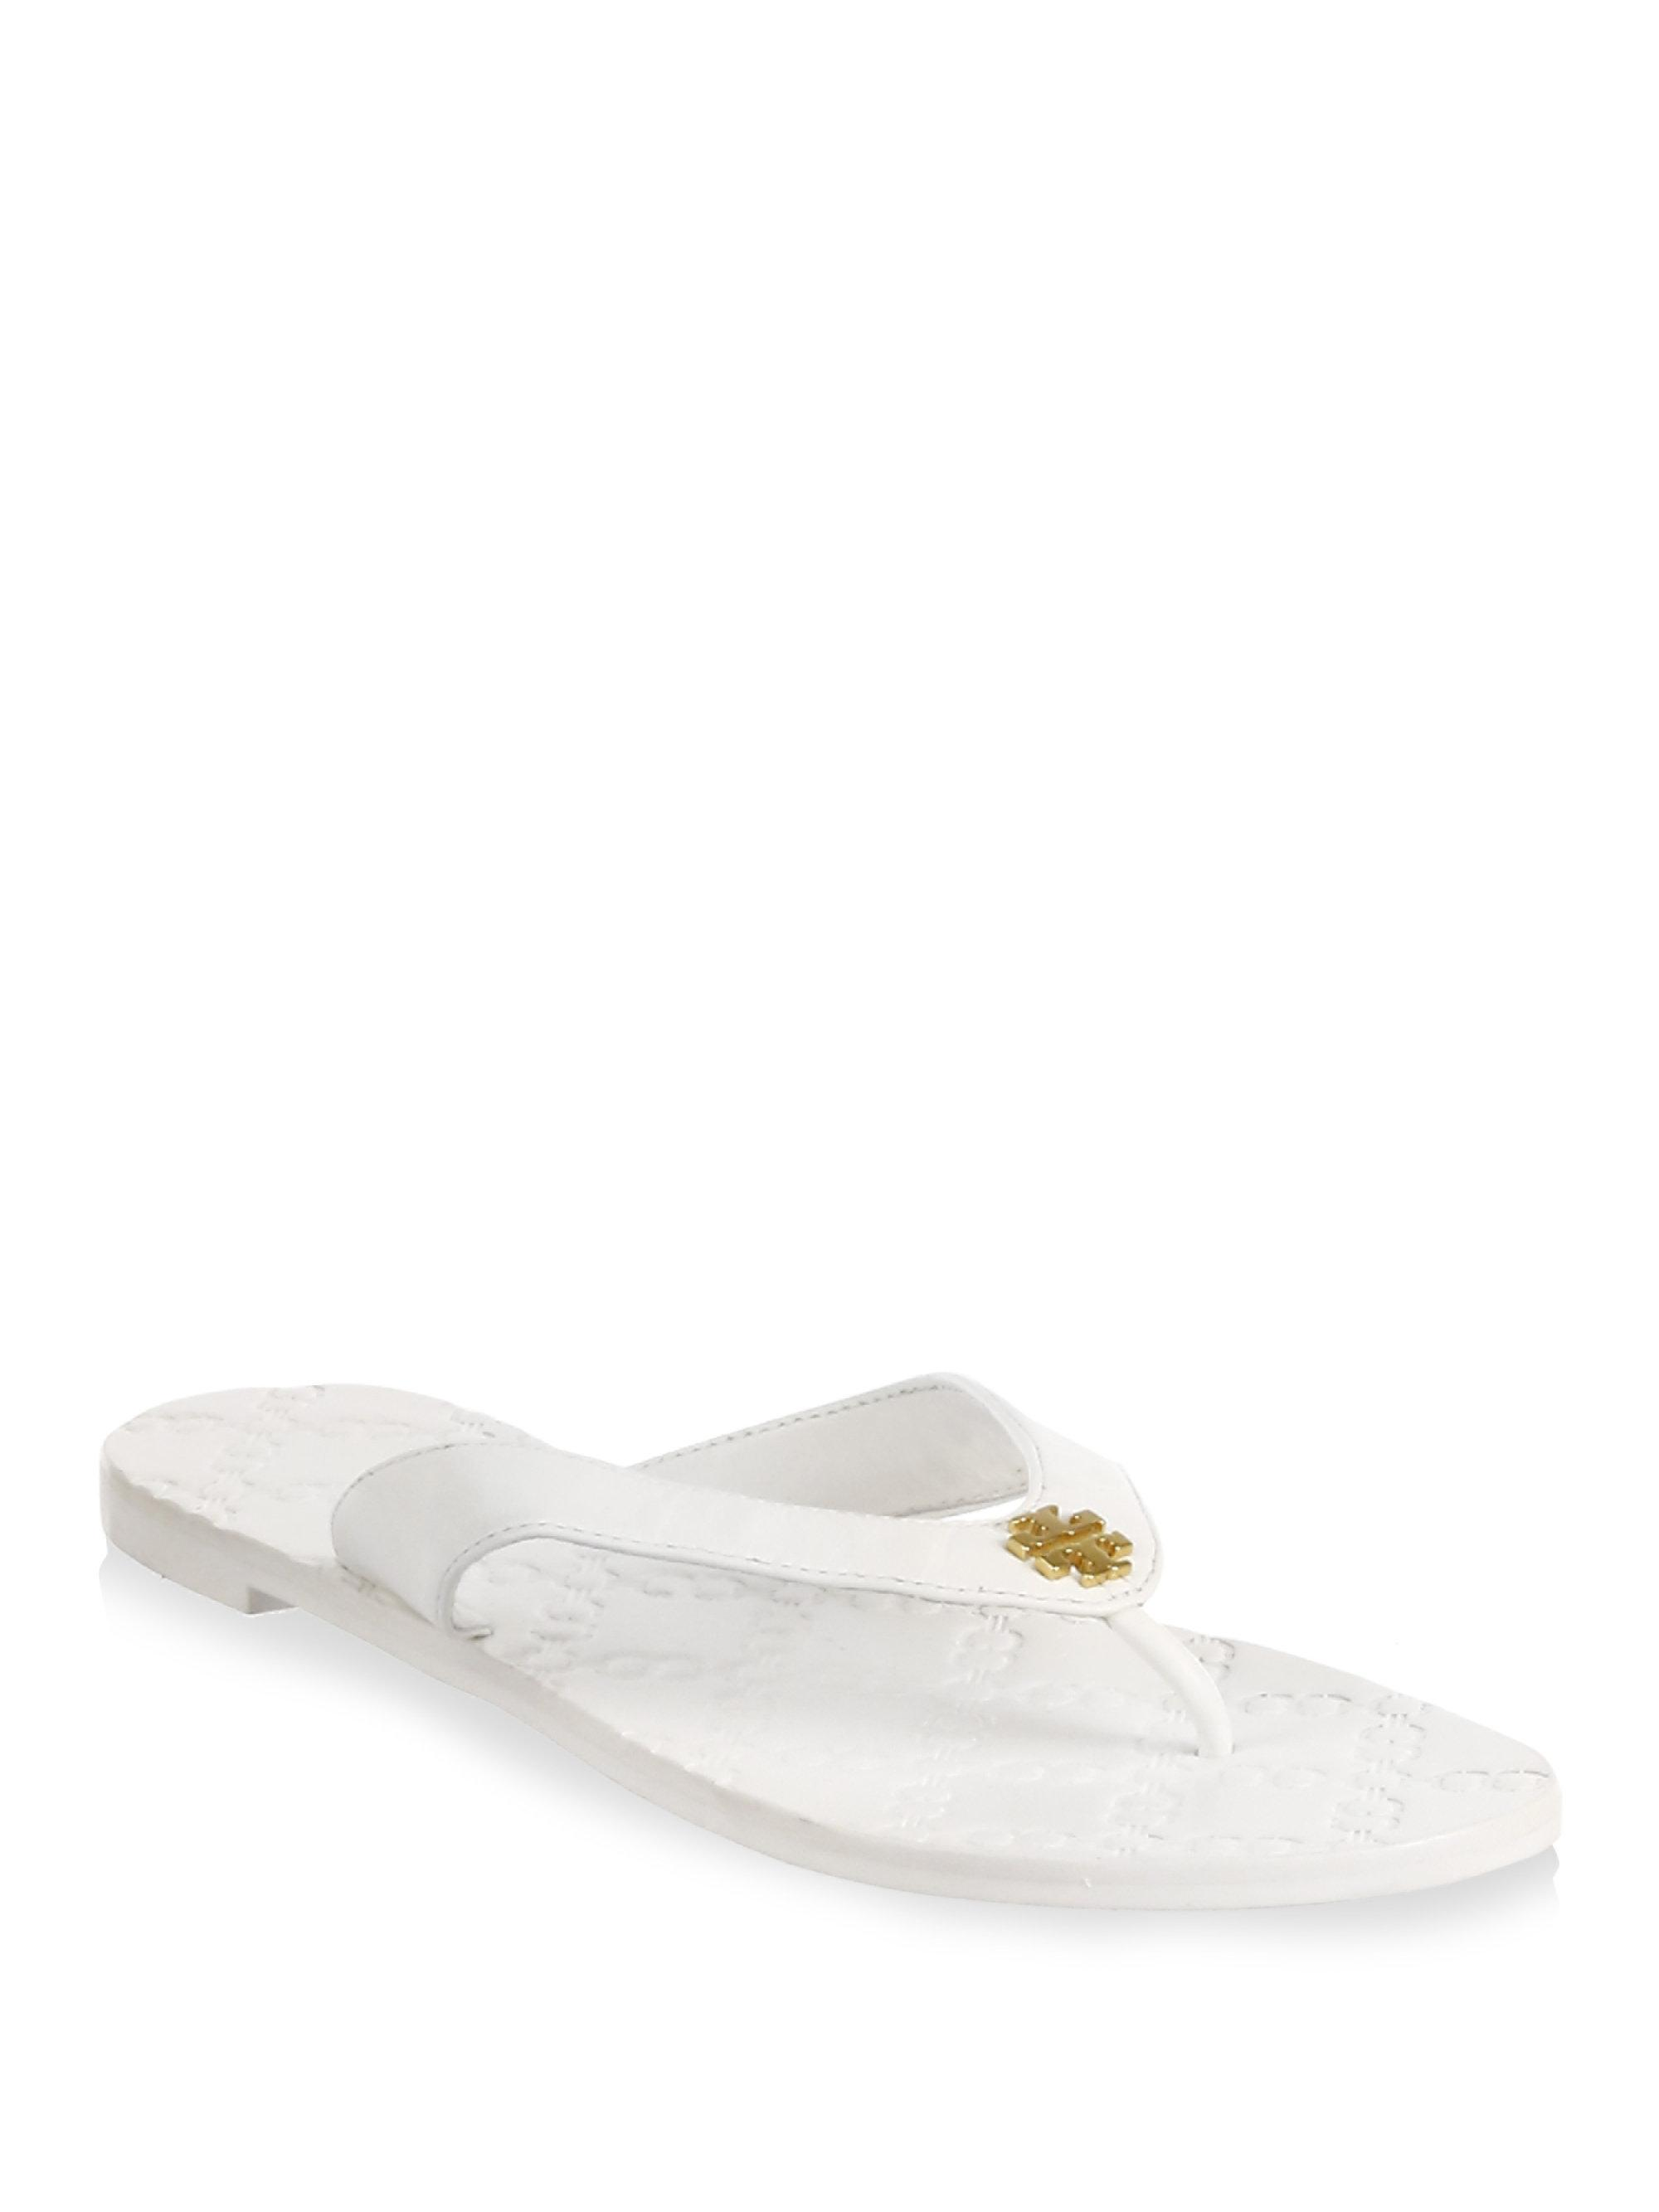 4ab7c318701851 ... france tory burch. womens white monroe leather thong sandals 40966  3099d ...